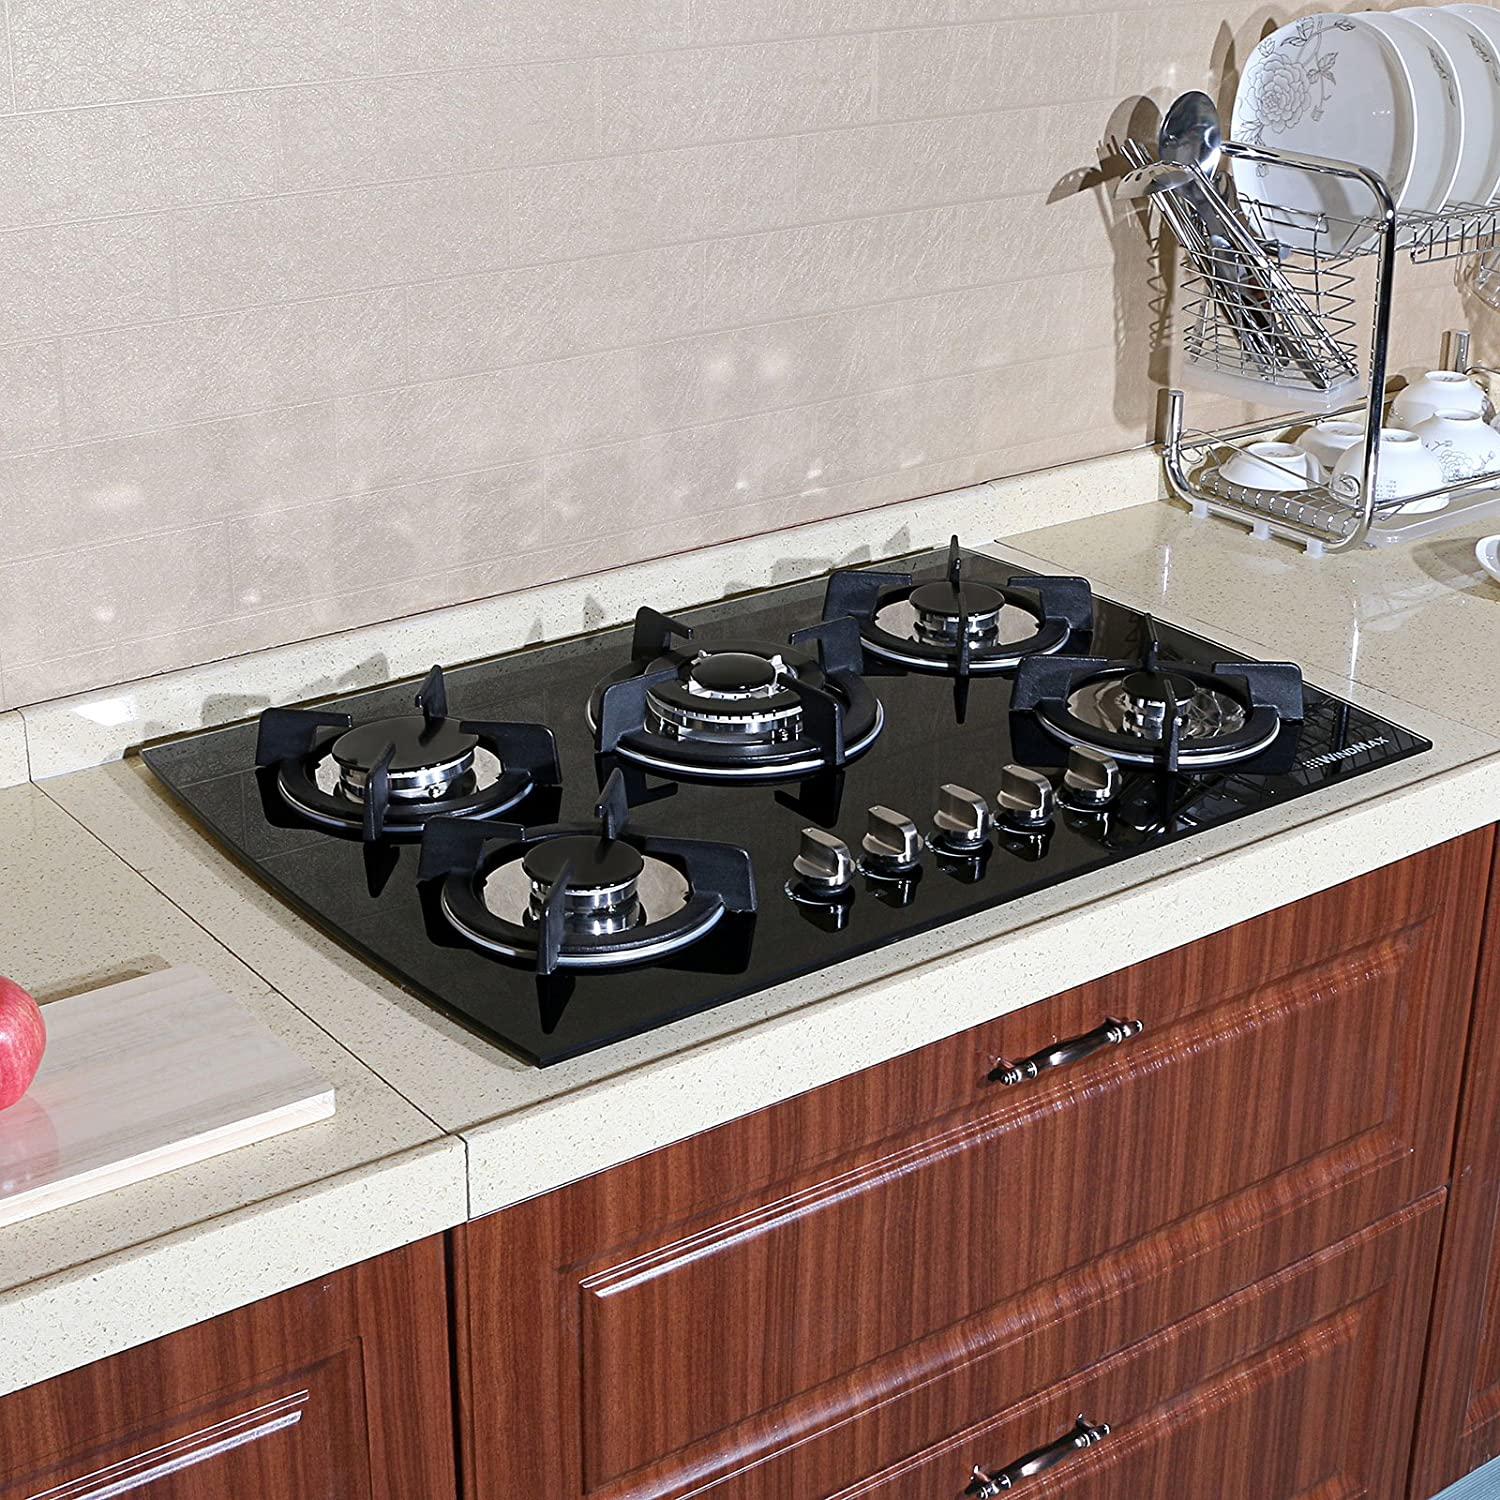 manly plus design balck s kitchen bins range gas learning siland few stovemodel stove five separated countertop metal a ideas tops